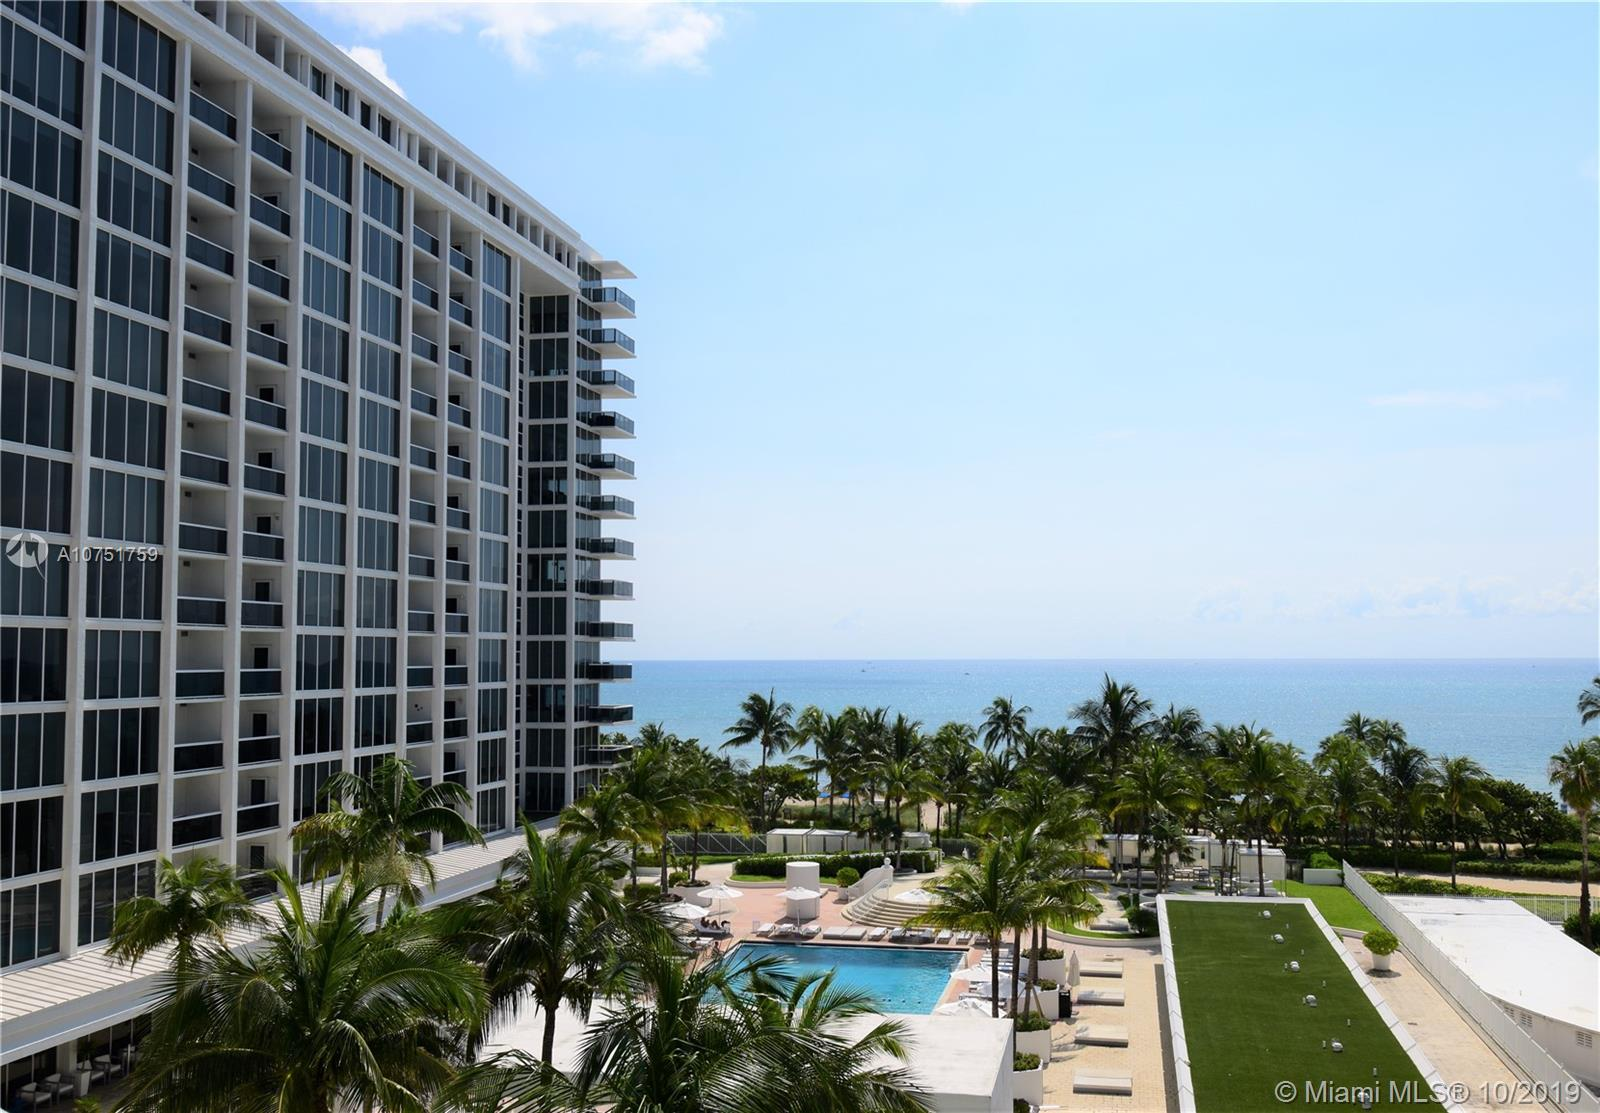 10275 Collins Ave # 521, Bal Harbour FL 33154